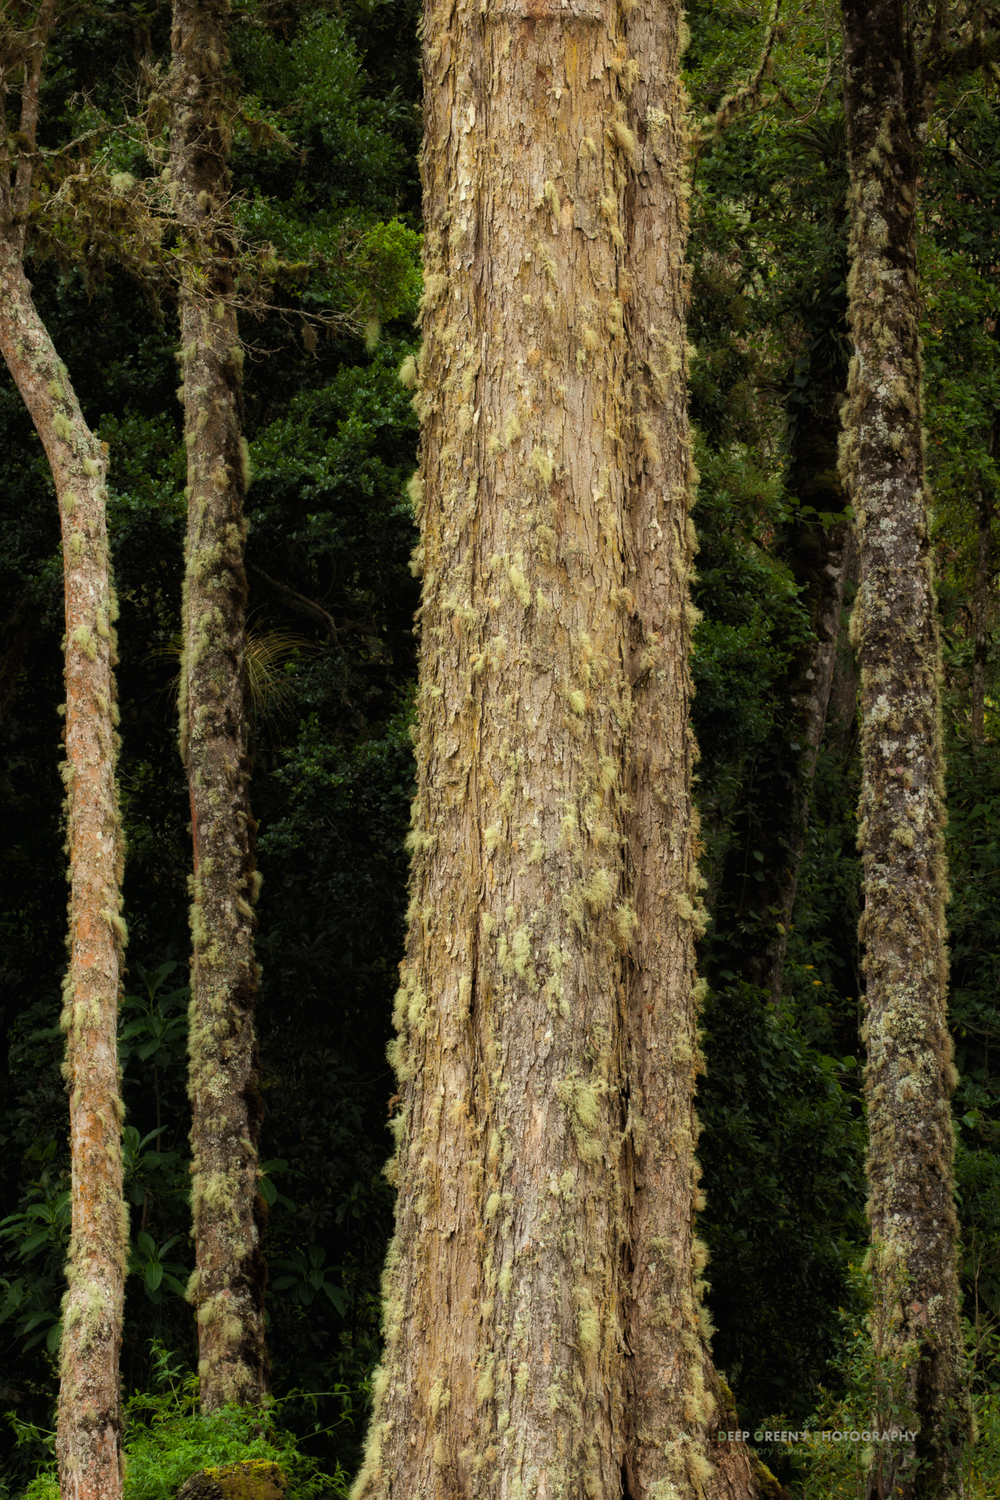 trees of the Talamanca cloud forest